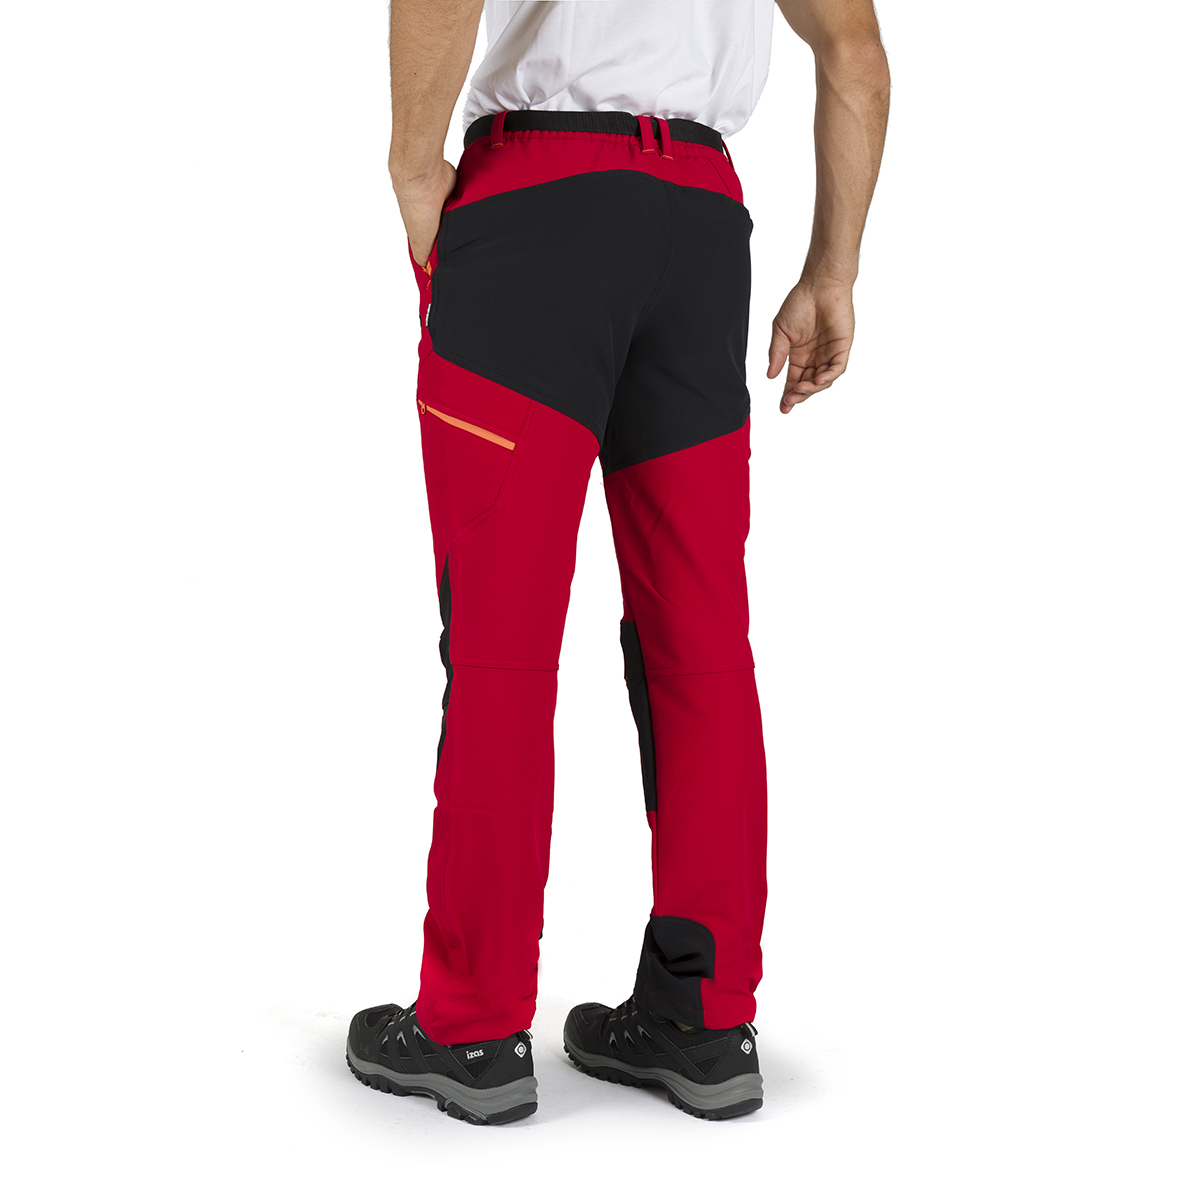 MAN'S BALTIC STRETCH PANT RED